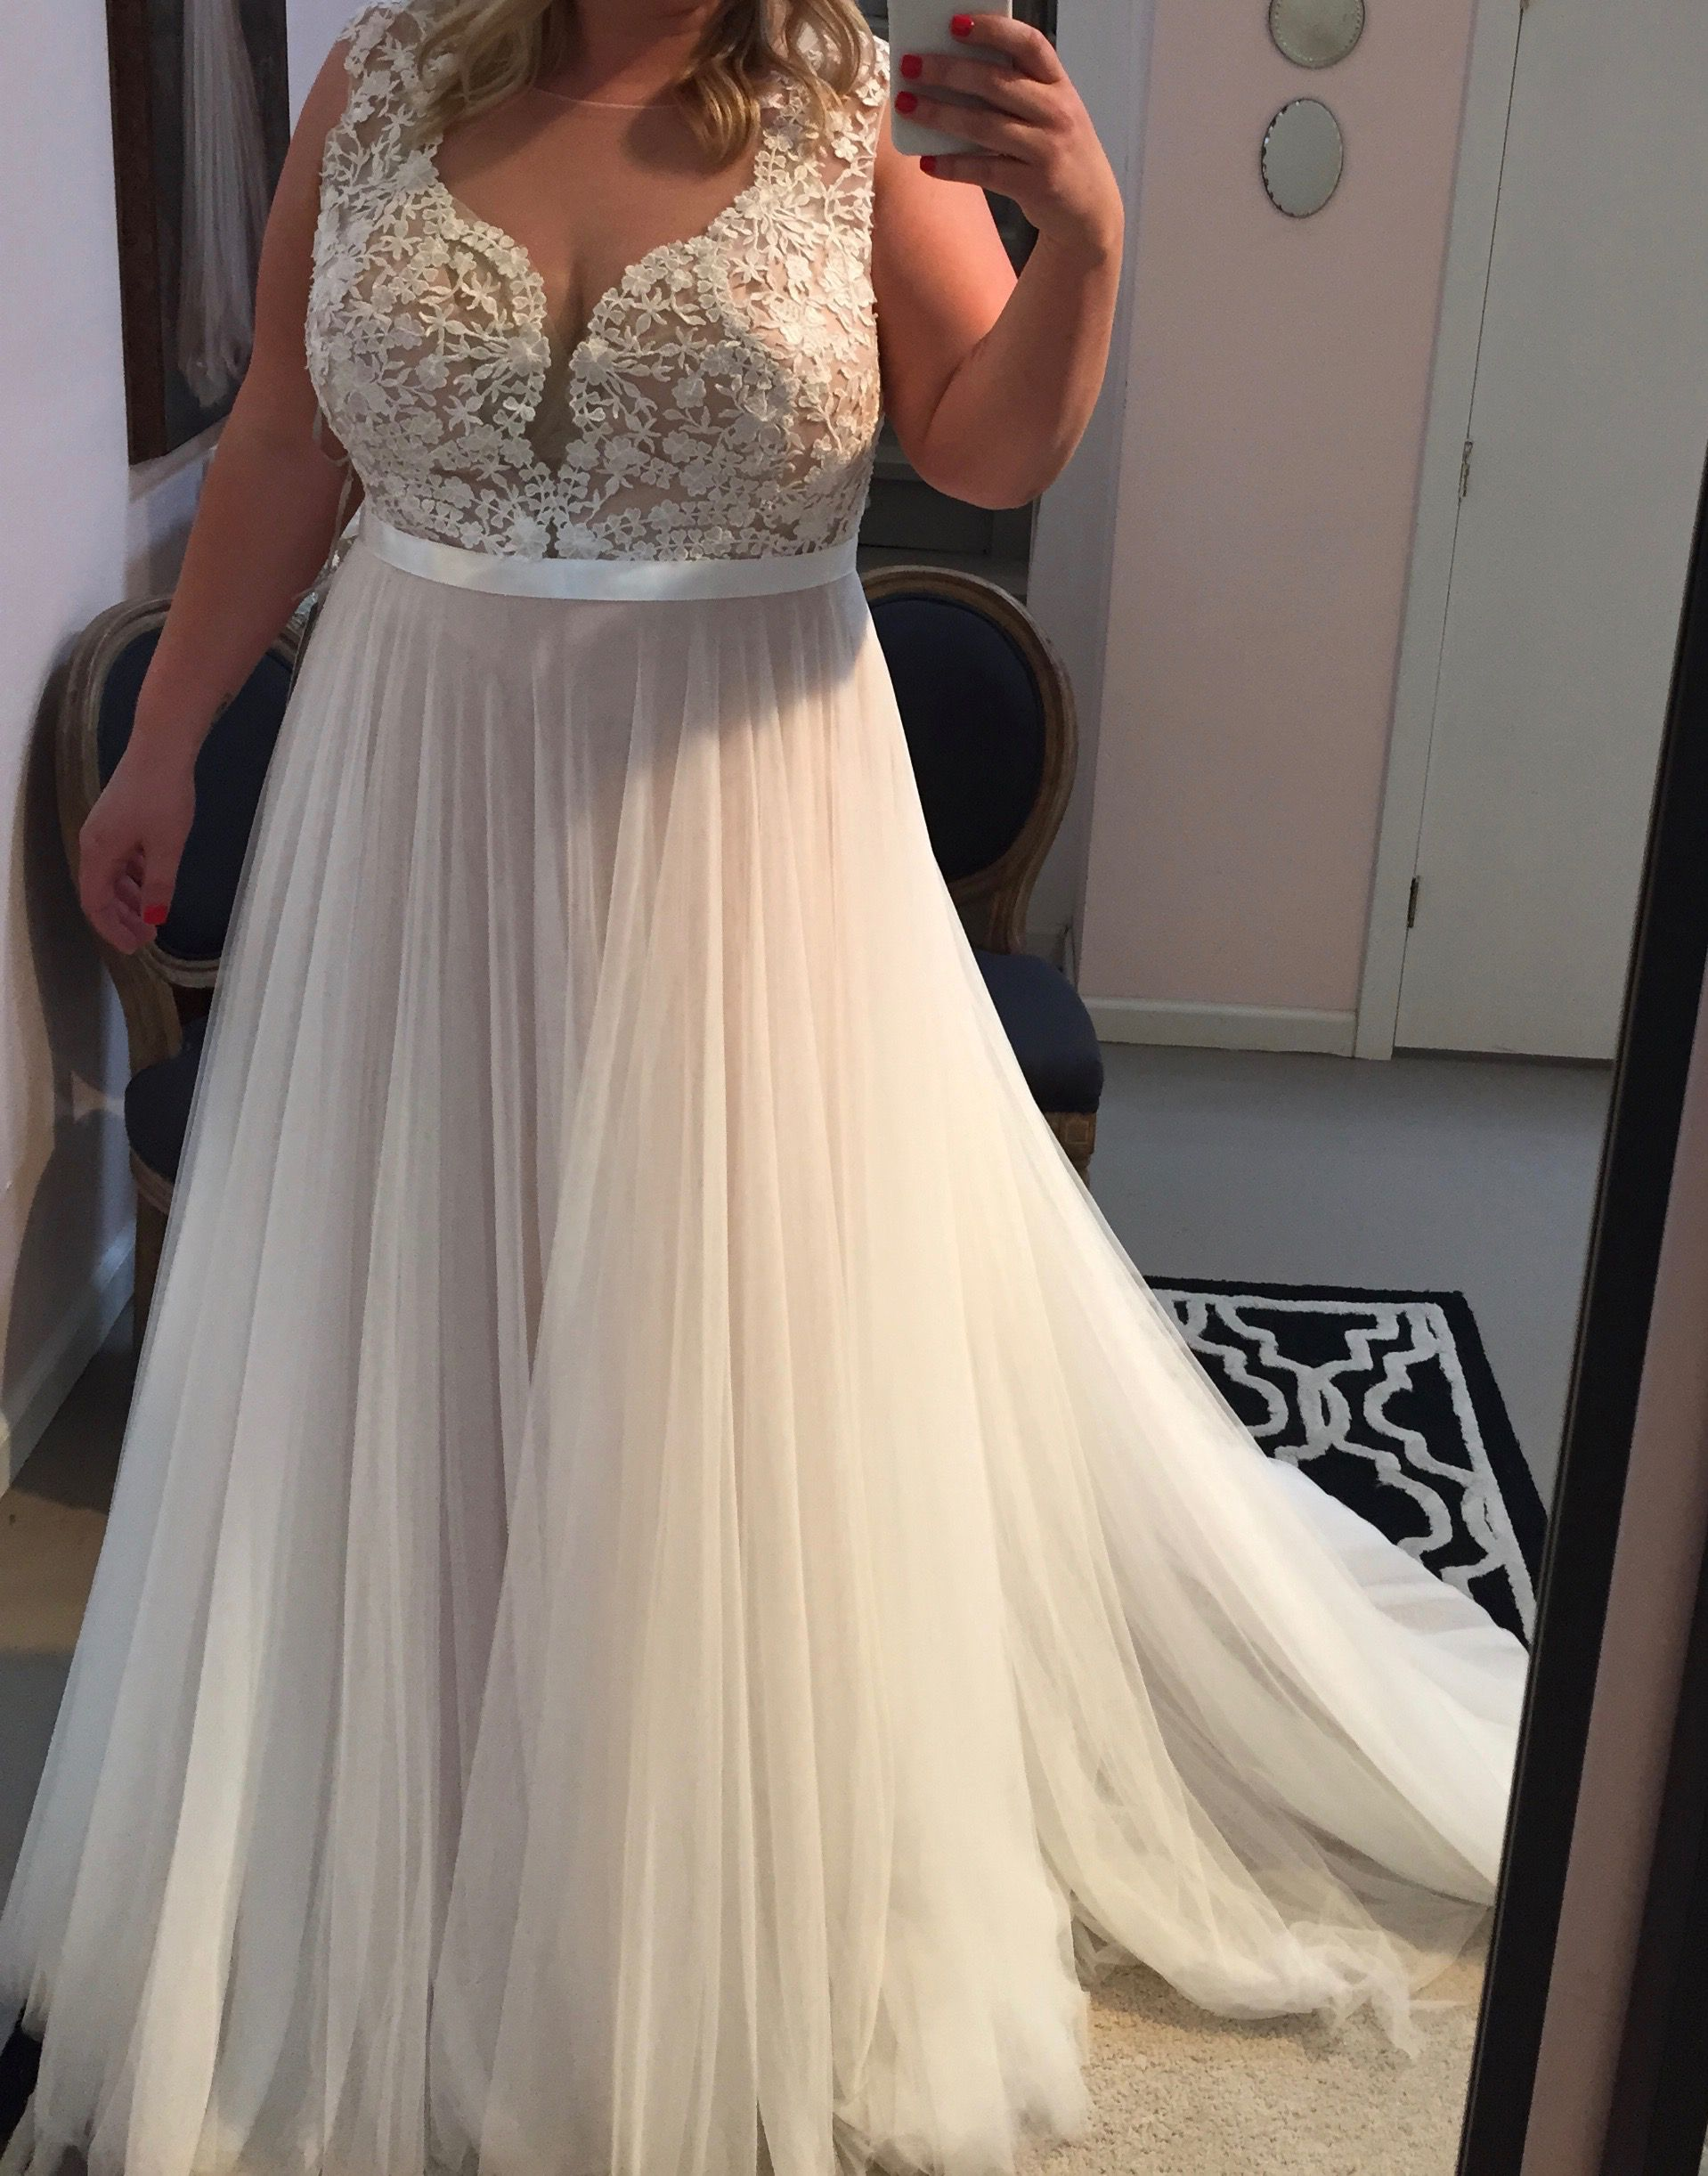 Plus size wedding dress beach wedding dress wedding for Best wedding dress styles for plus size brides